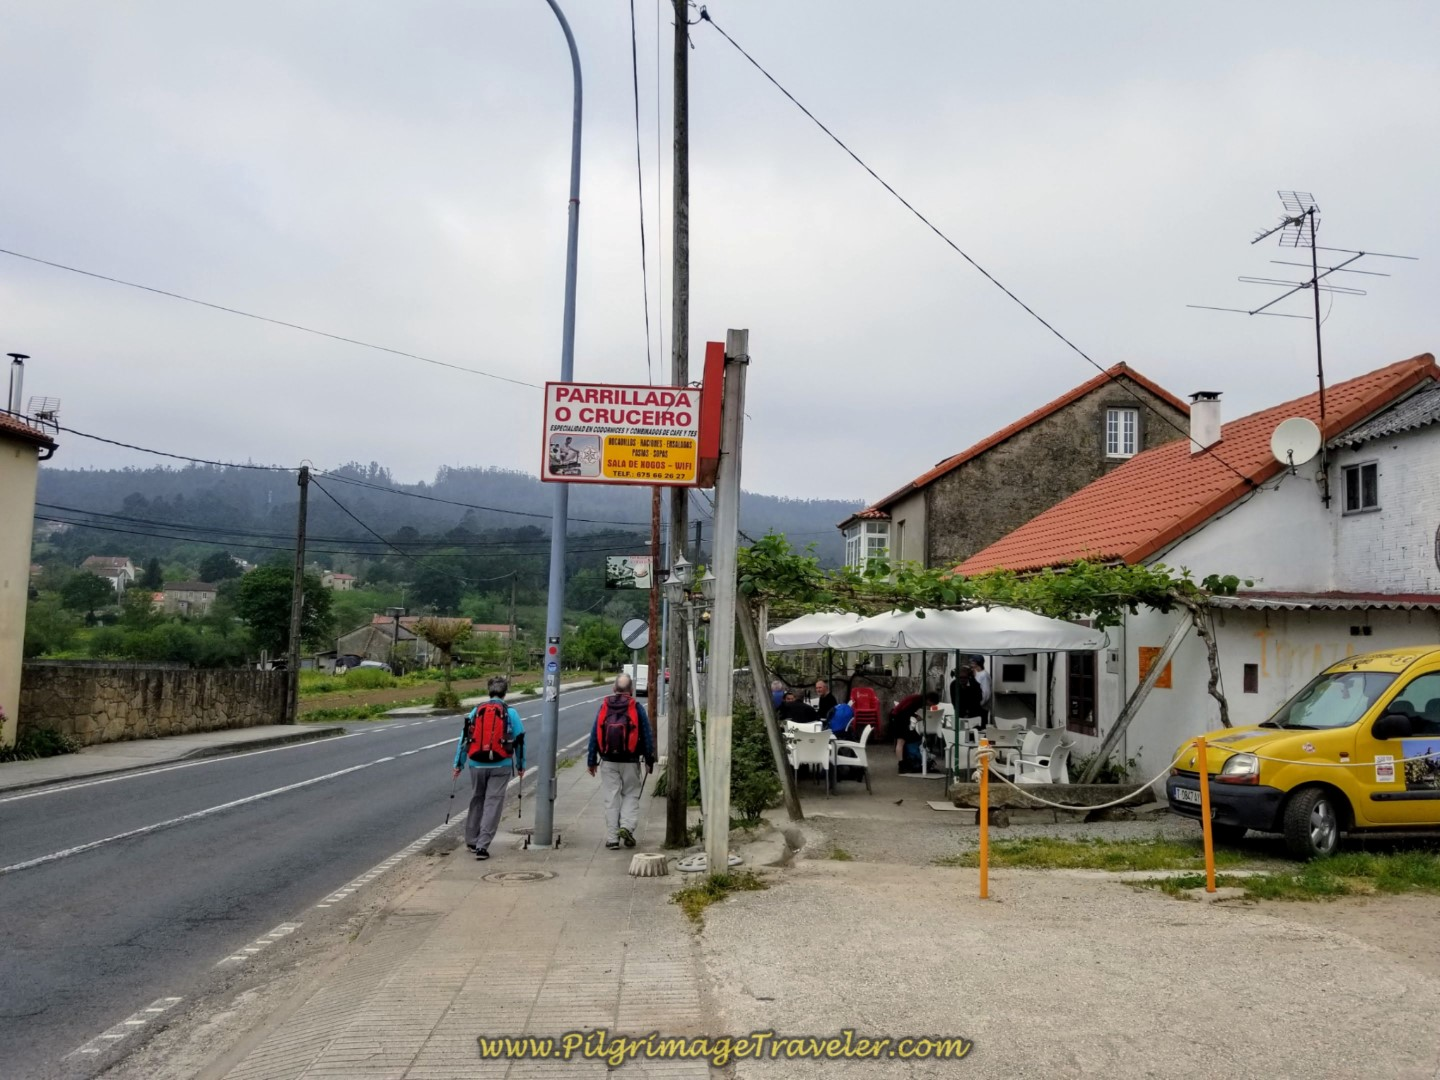 Café Parrillada O Cruceiro at the Halfway Point on day one of the Camino Fisterra